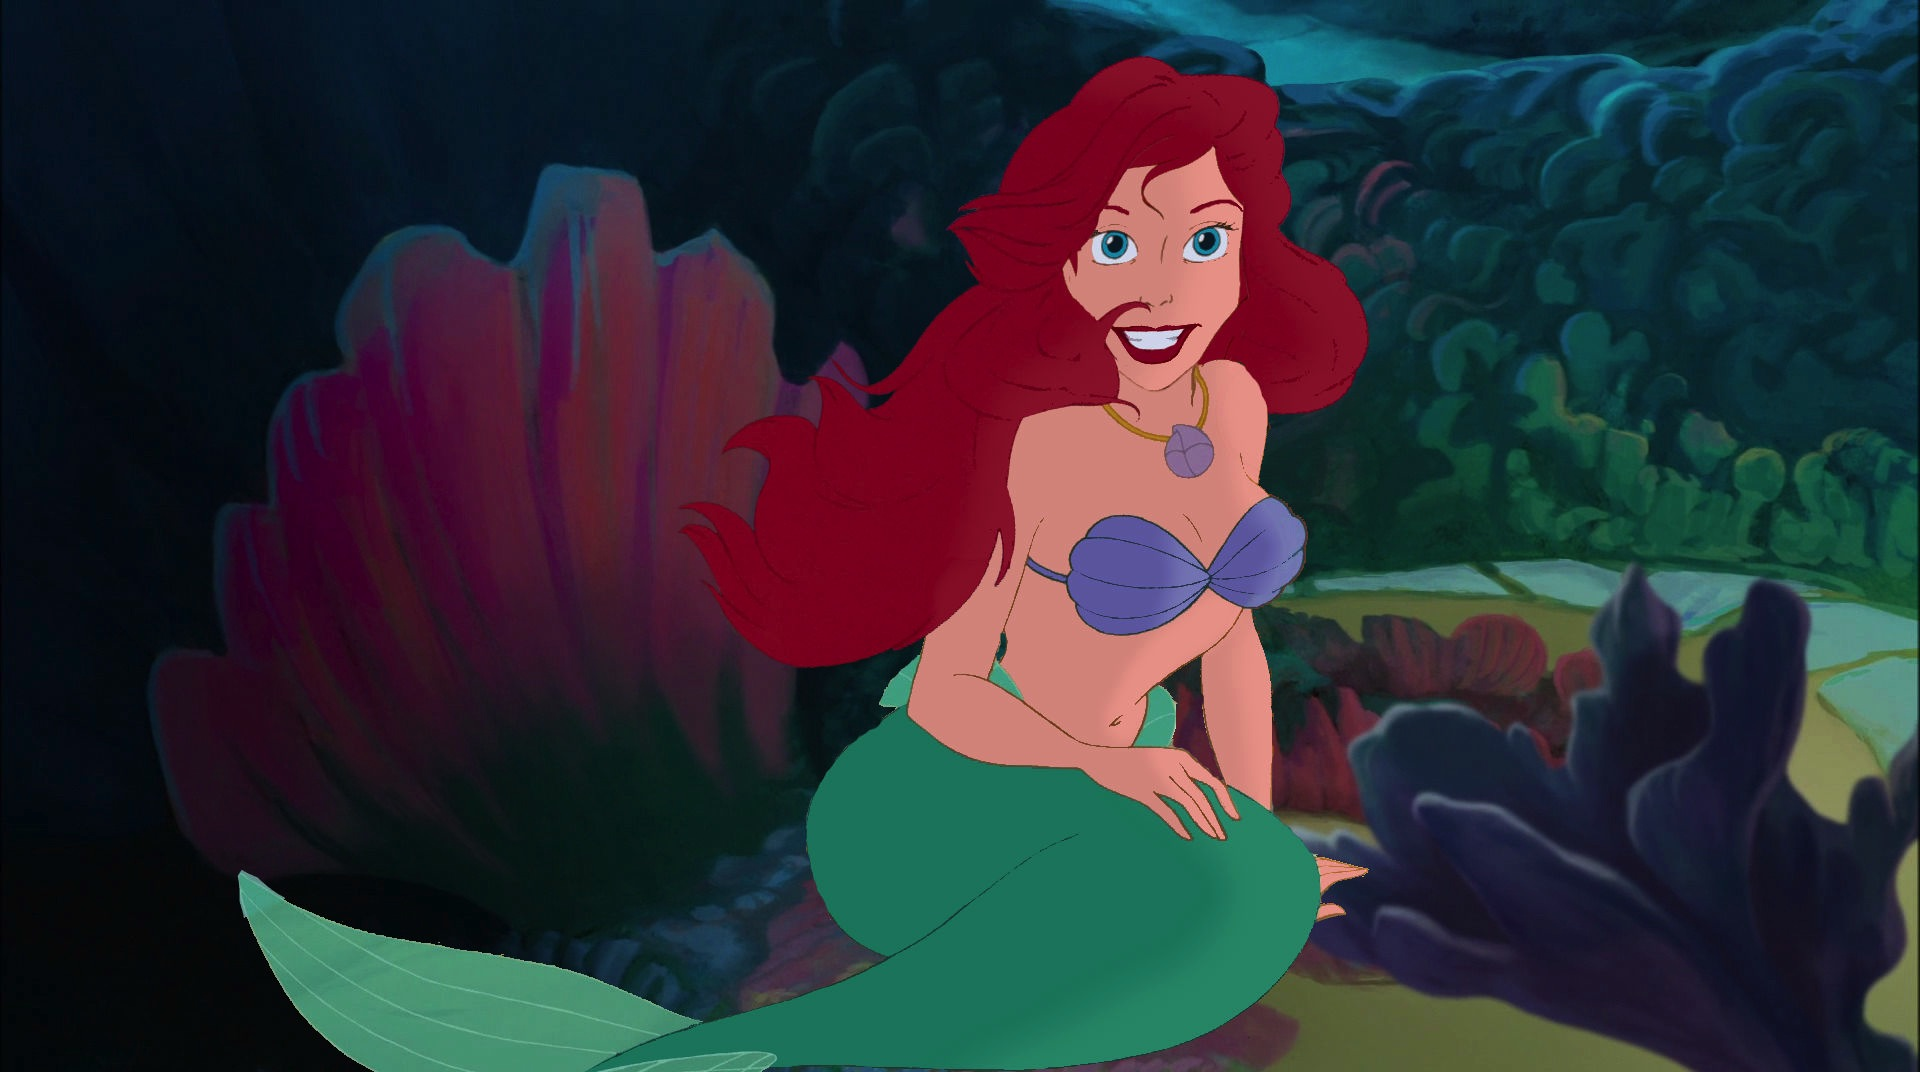 My Redesign of Ariel